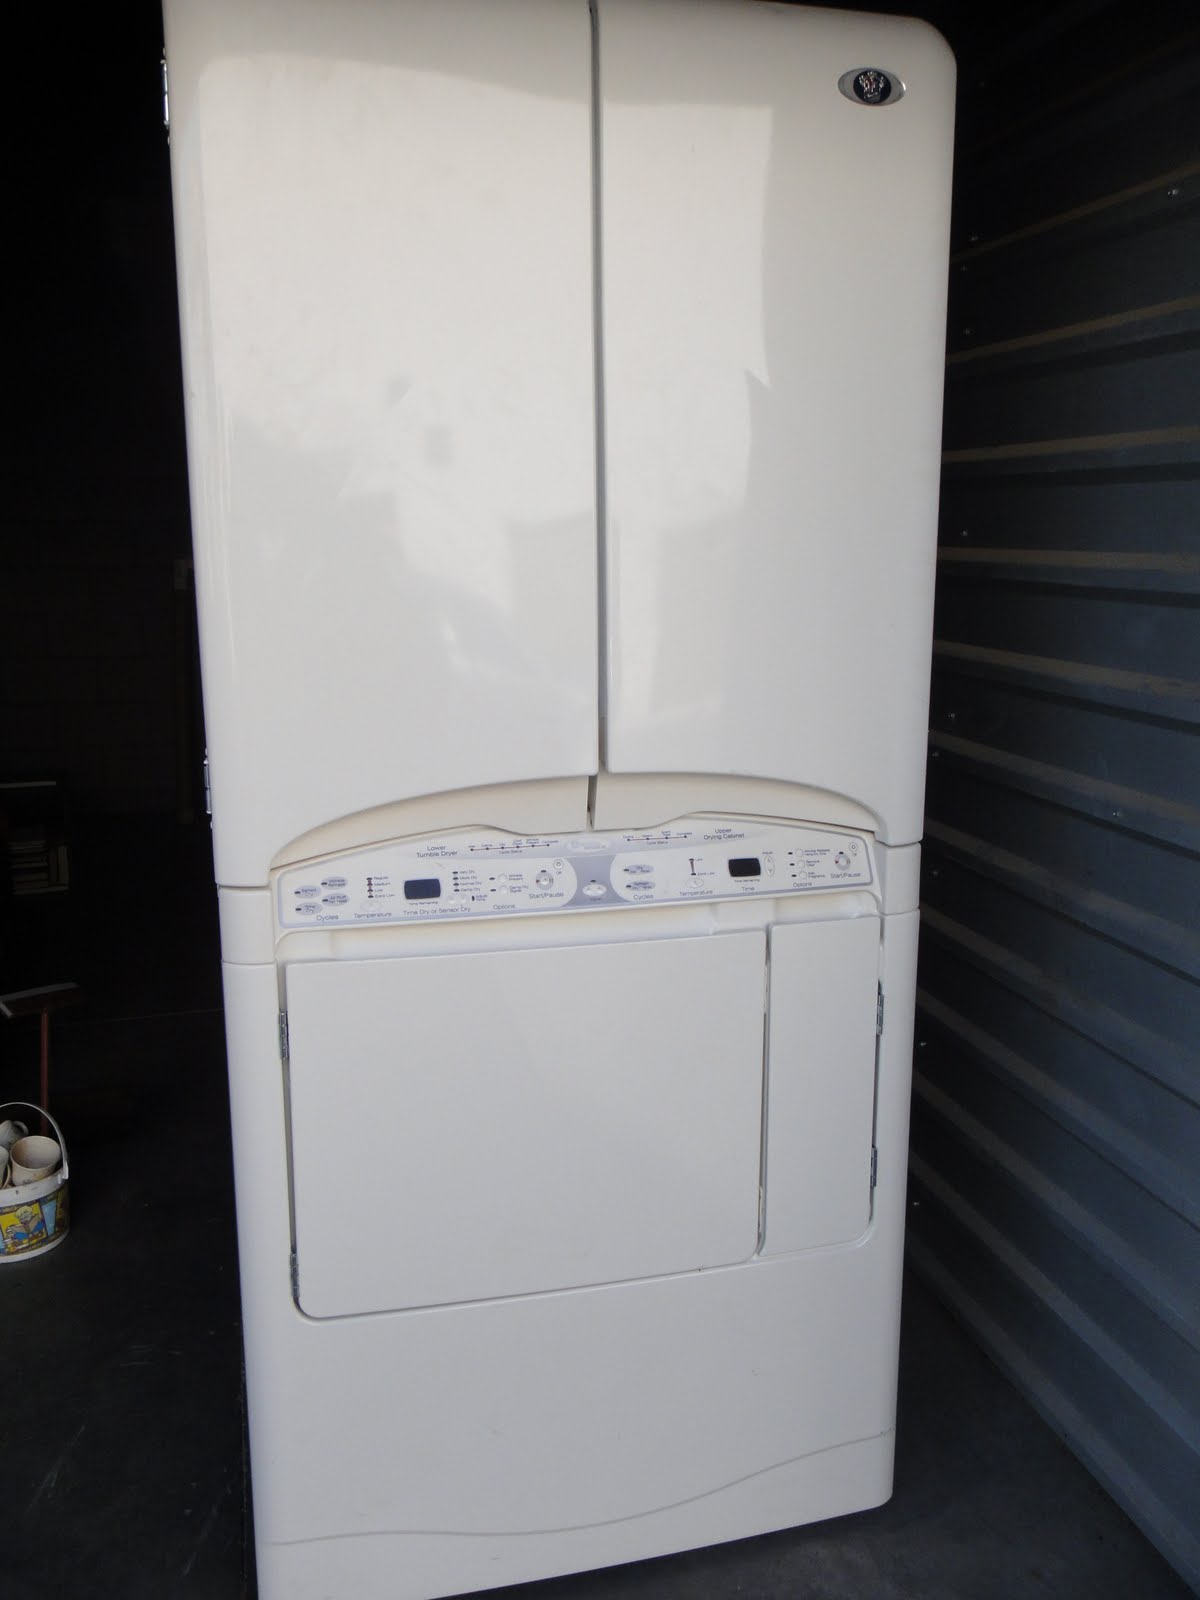 Whirlpool Washer Wiring Diagram Microsoft Exchange Topology The Storage Princess: Sold!!! No Longer Available! Maytag Neptune Series Gas Drying System $130.00